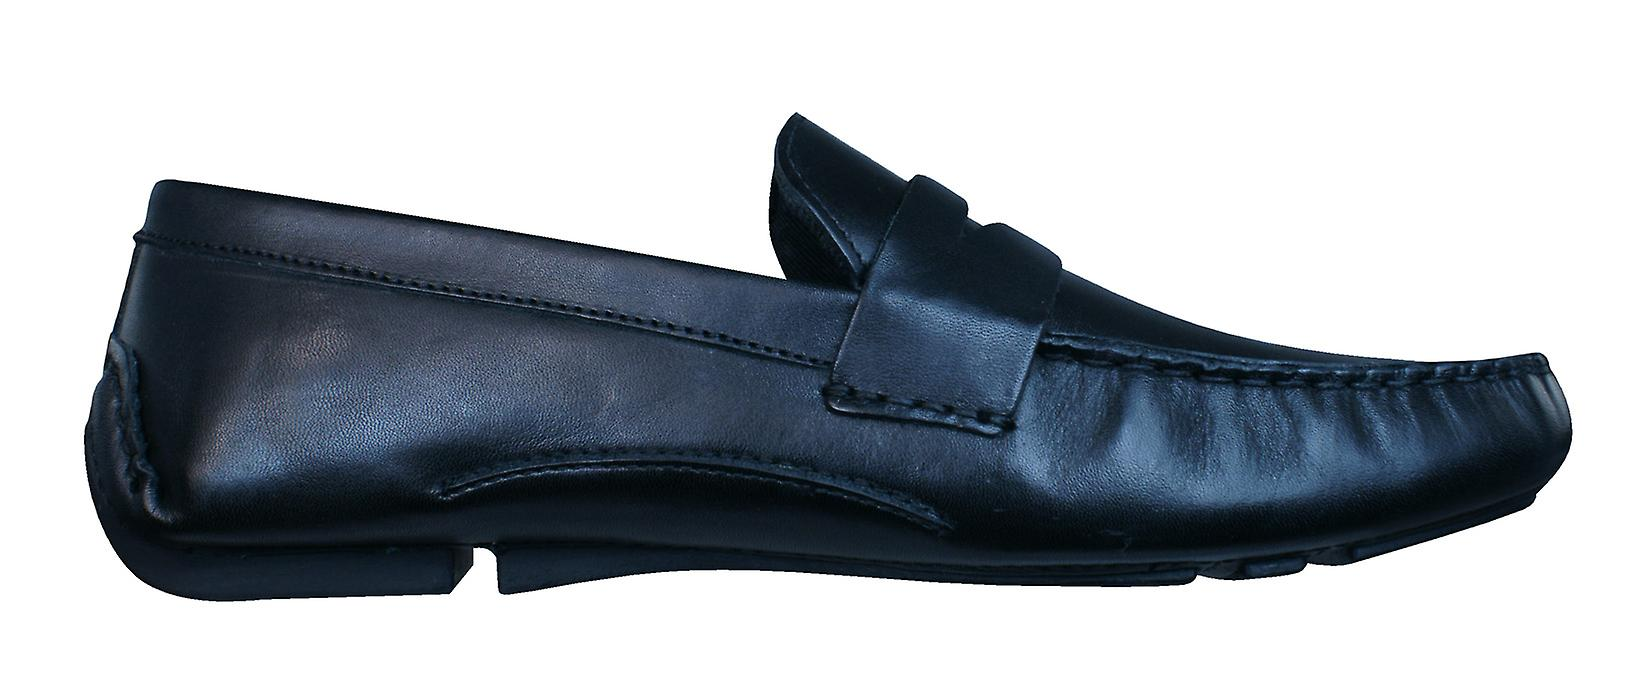 50f93b949fb Red Tape Cranfield Mens Leather Slip On Loafers   Shoes - Black